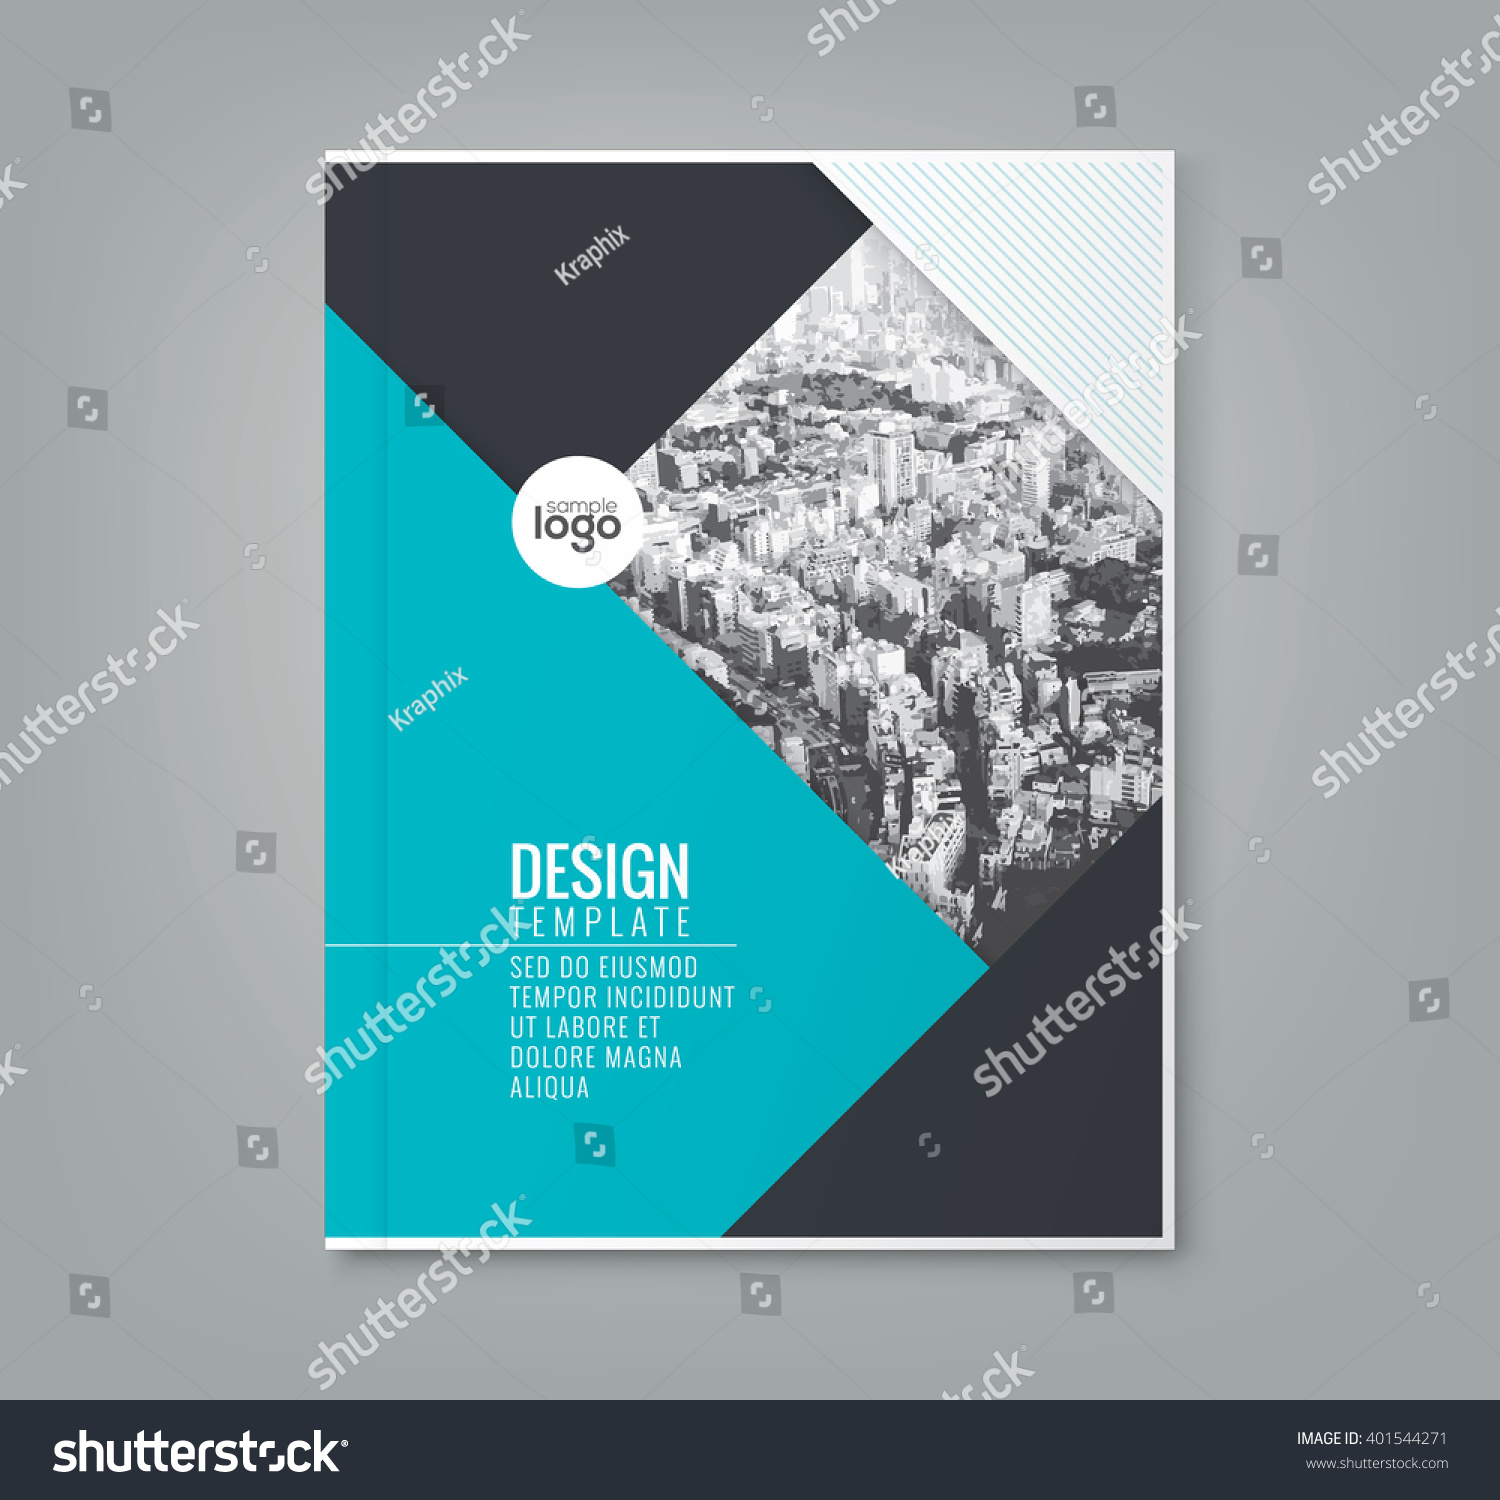 Minimalist Book Cover Template ~ Minimal simple blue color design template stock vector